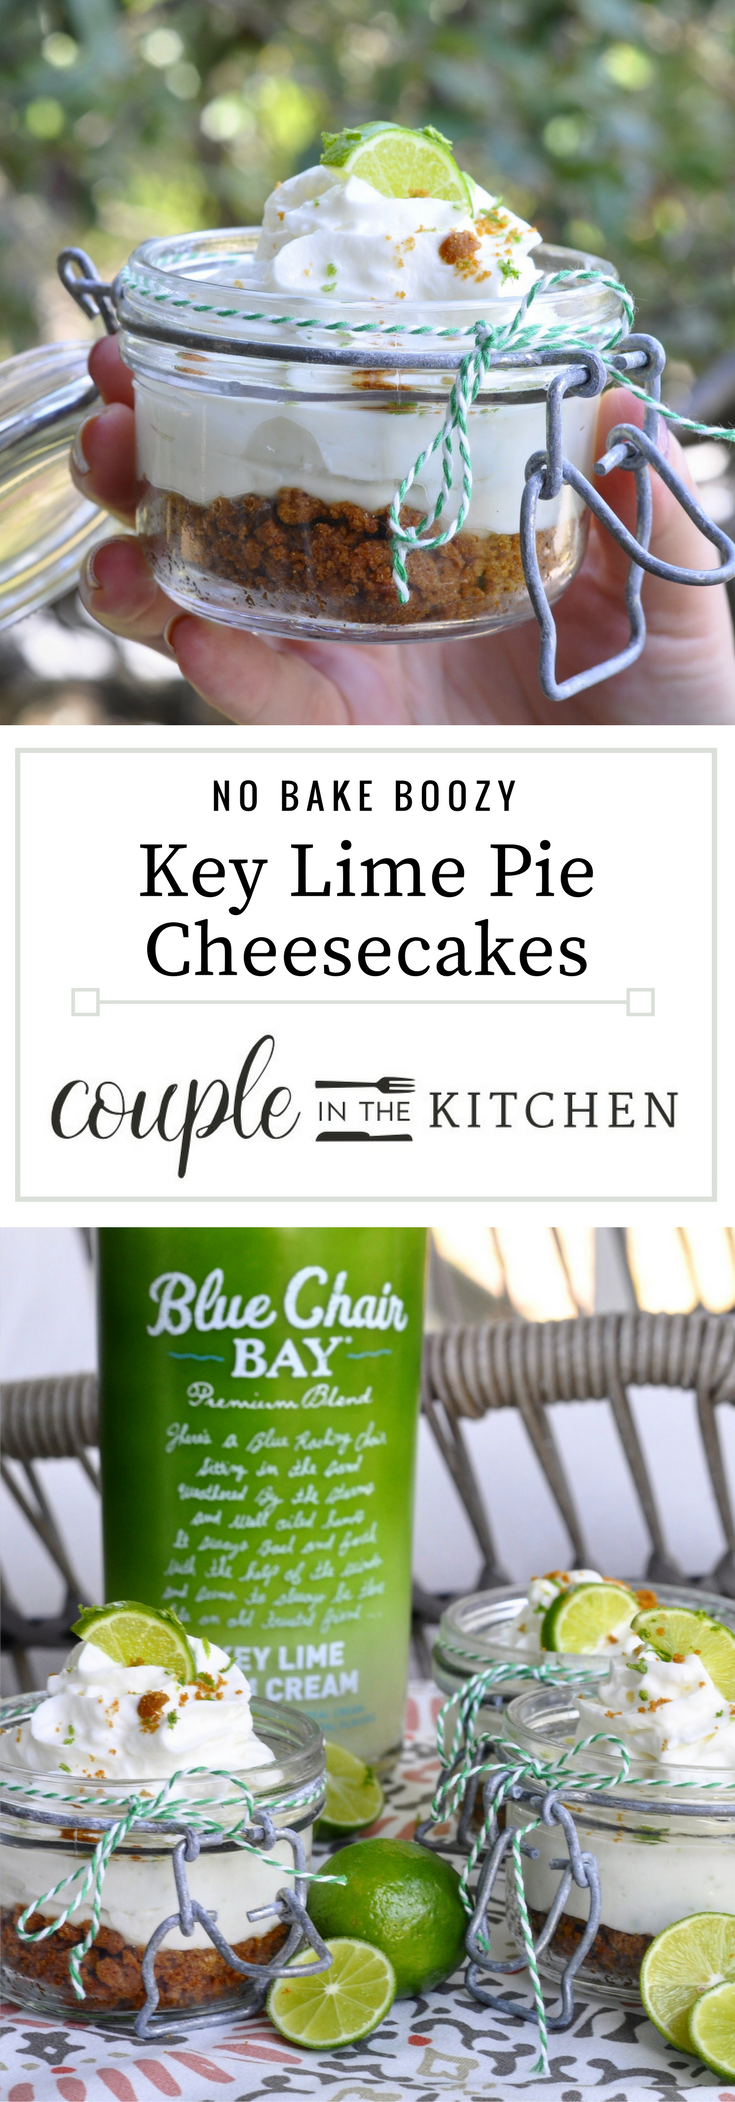 Key Lime Pie Cheesecake | coupleinthekitchen.com